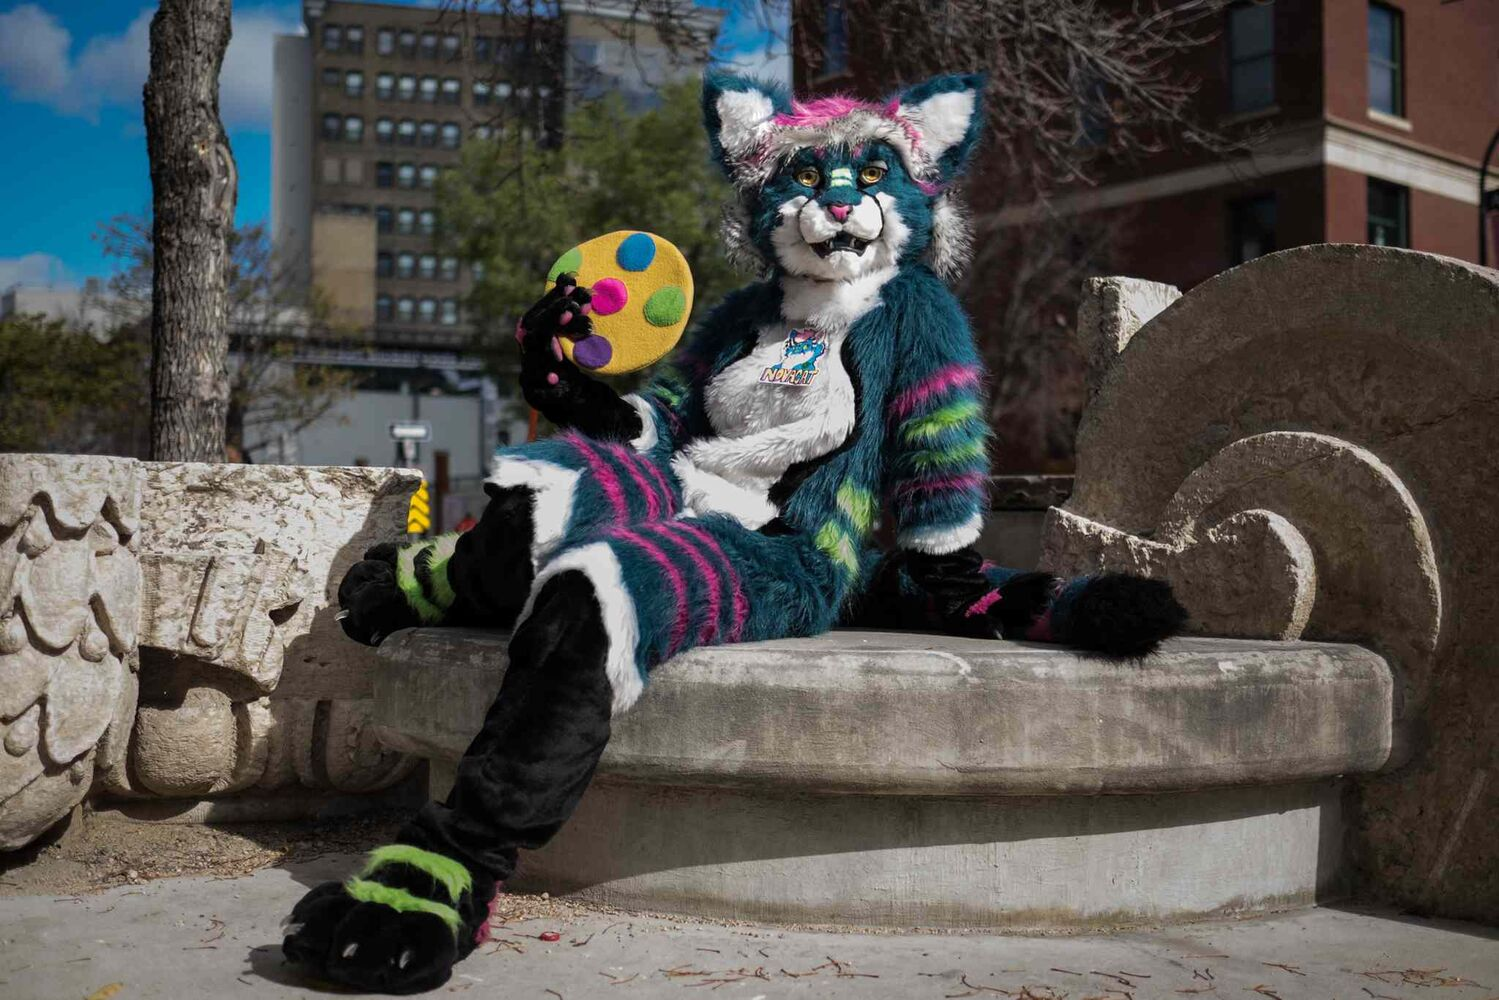 Cathy dressed in her furry suit as NovaCat.  (MIKE DEAL / WINNIPEG FREE PRESS)